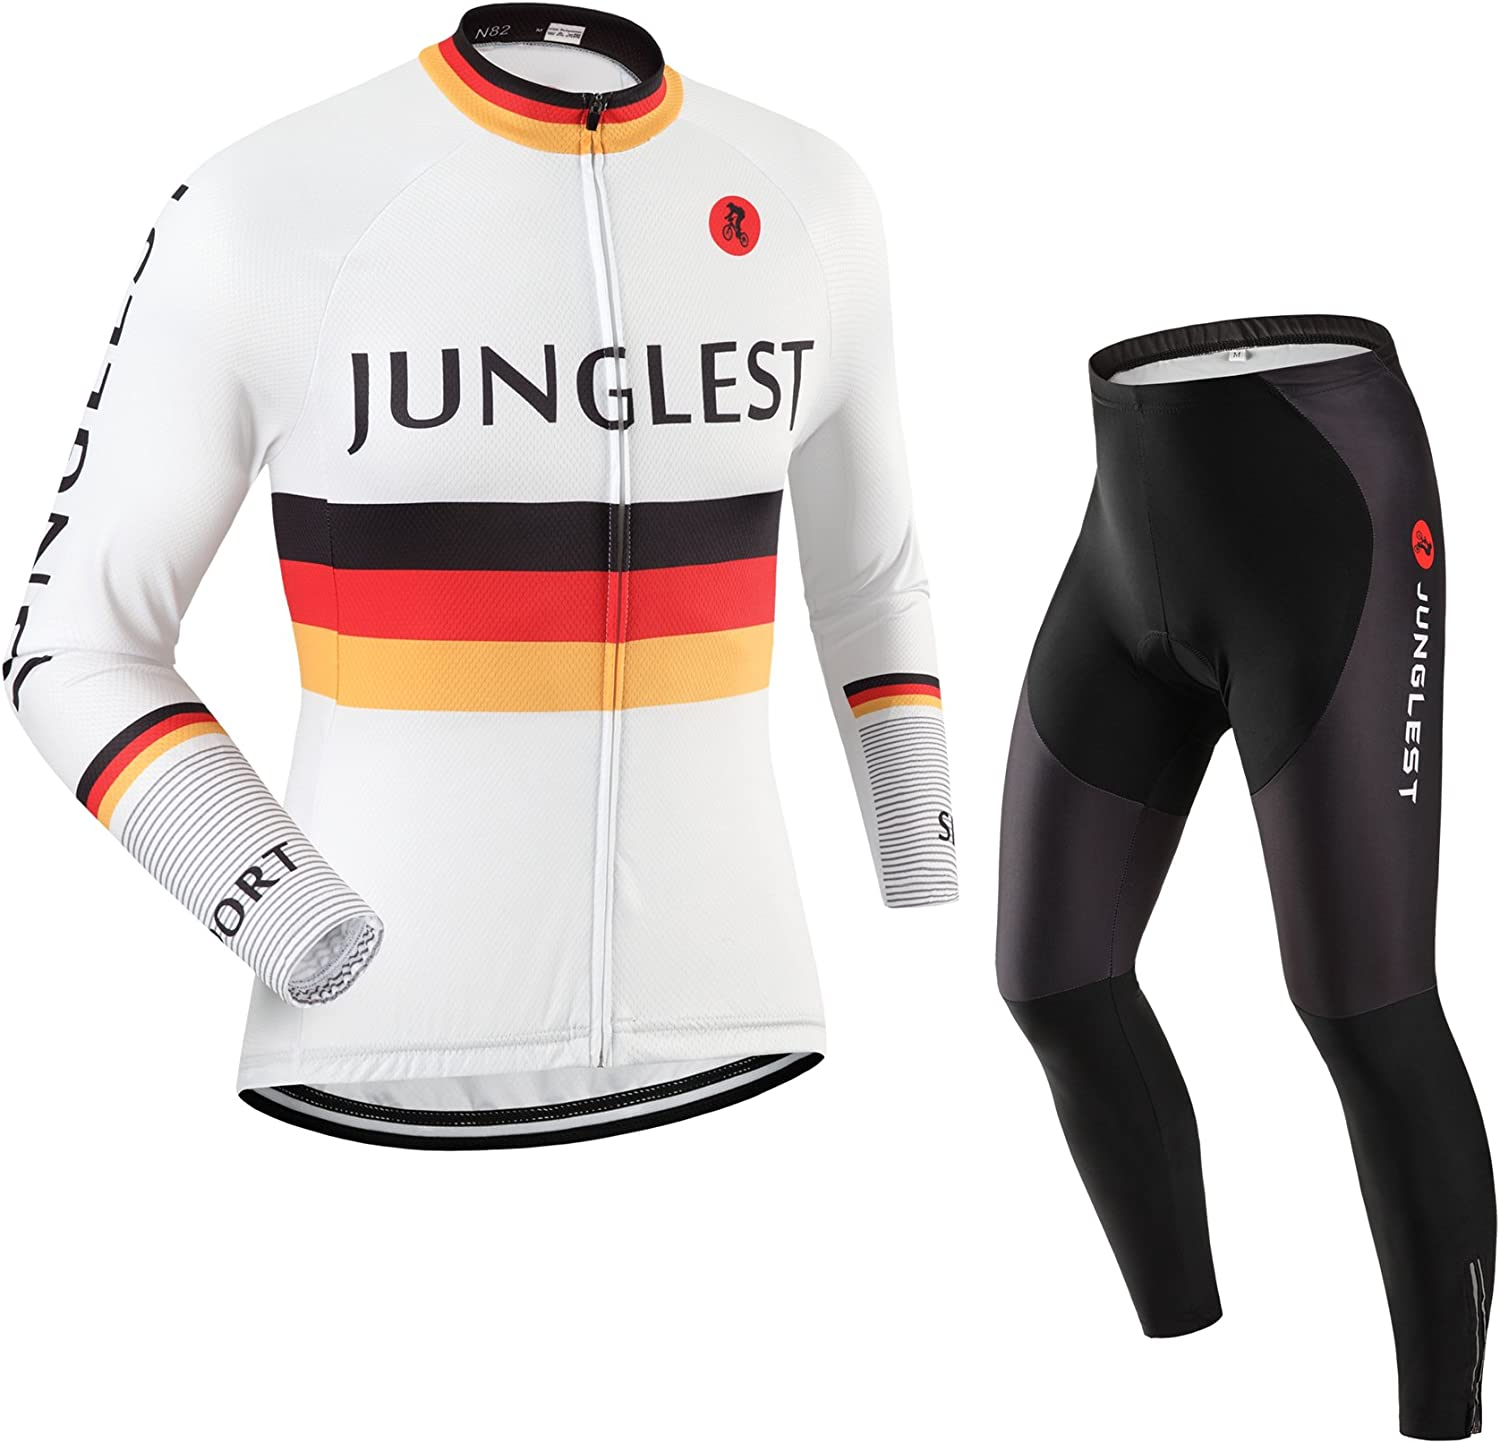 Cycling jersey Set, Maillot de Cyclisme Wen Homme Long sleeve Manches Longues(S5XL,option bib Cuissard,3D pad Coussin) N82